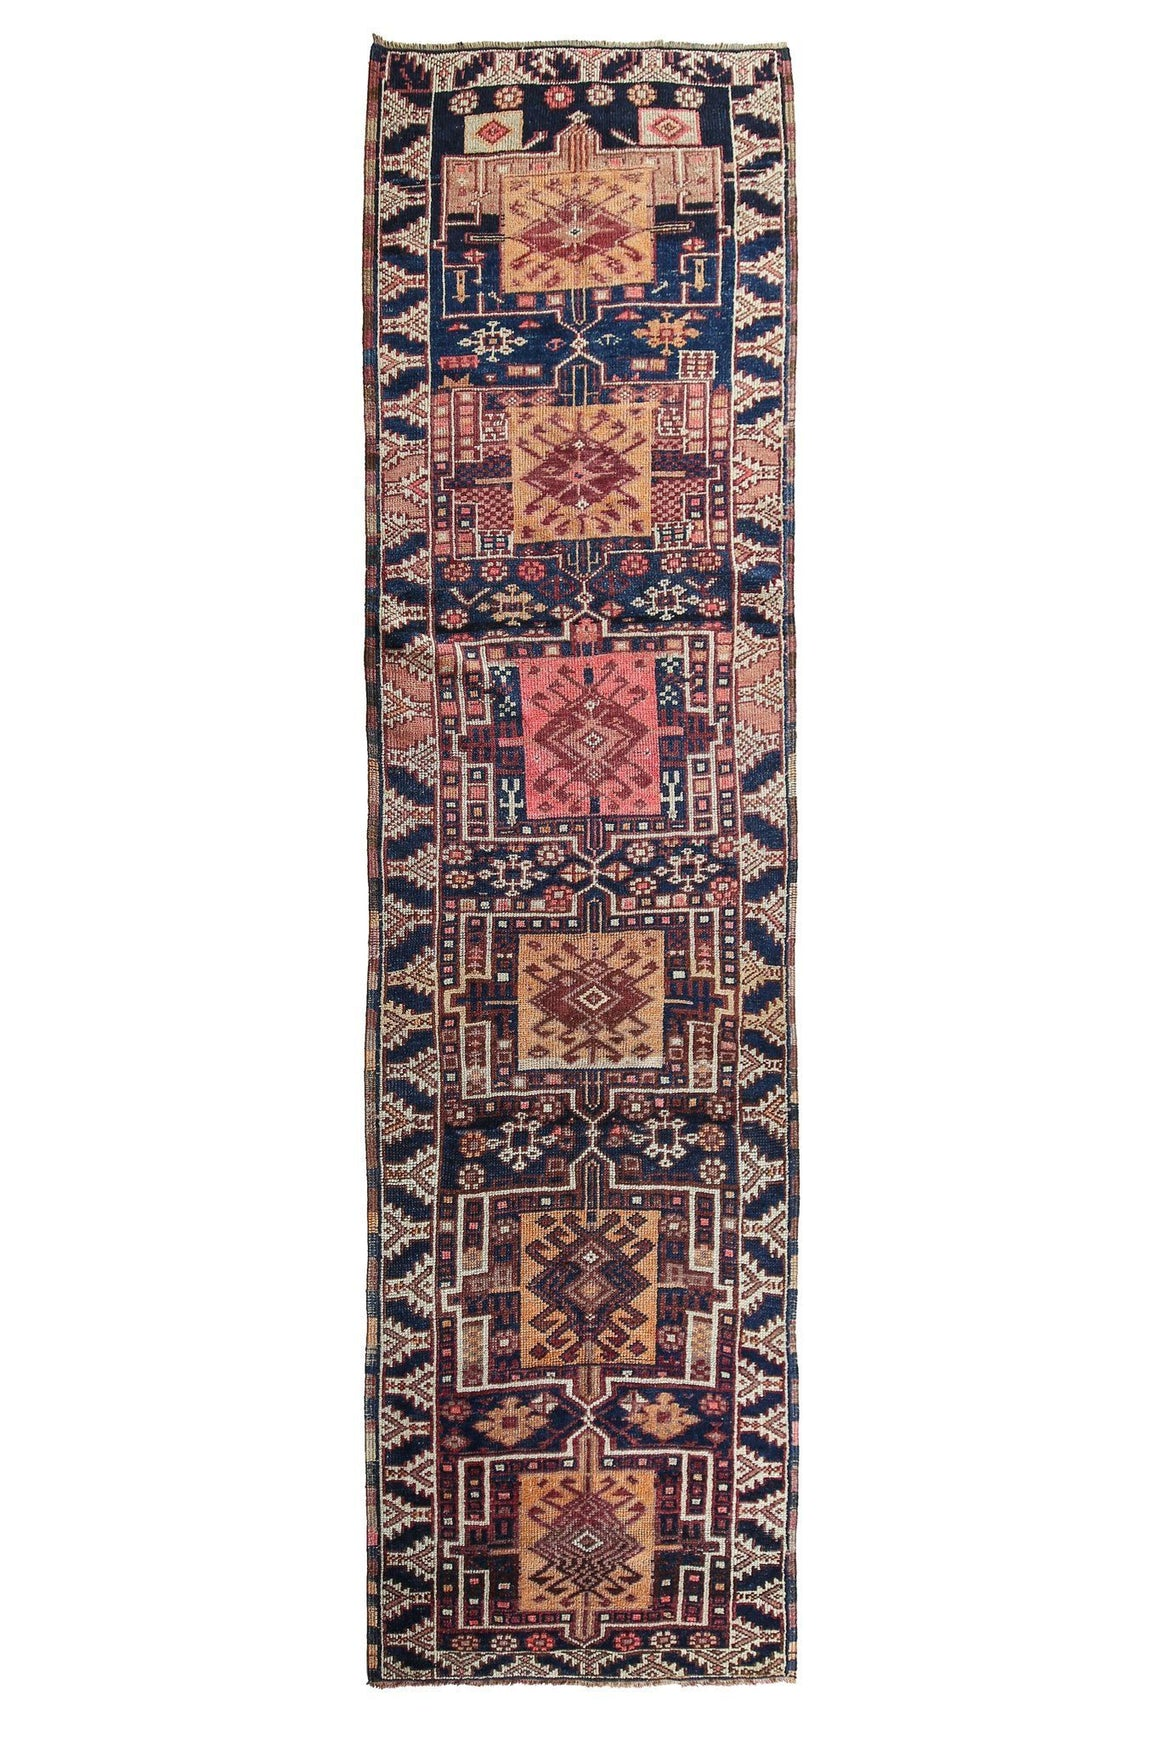 'Melody' Tribal Runner Rug - Canary Lane - Curated Textiles